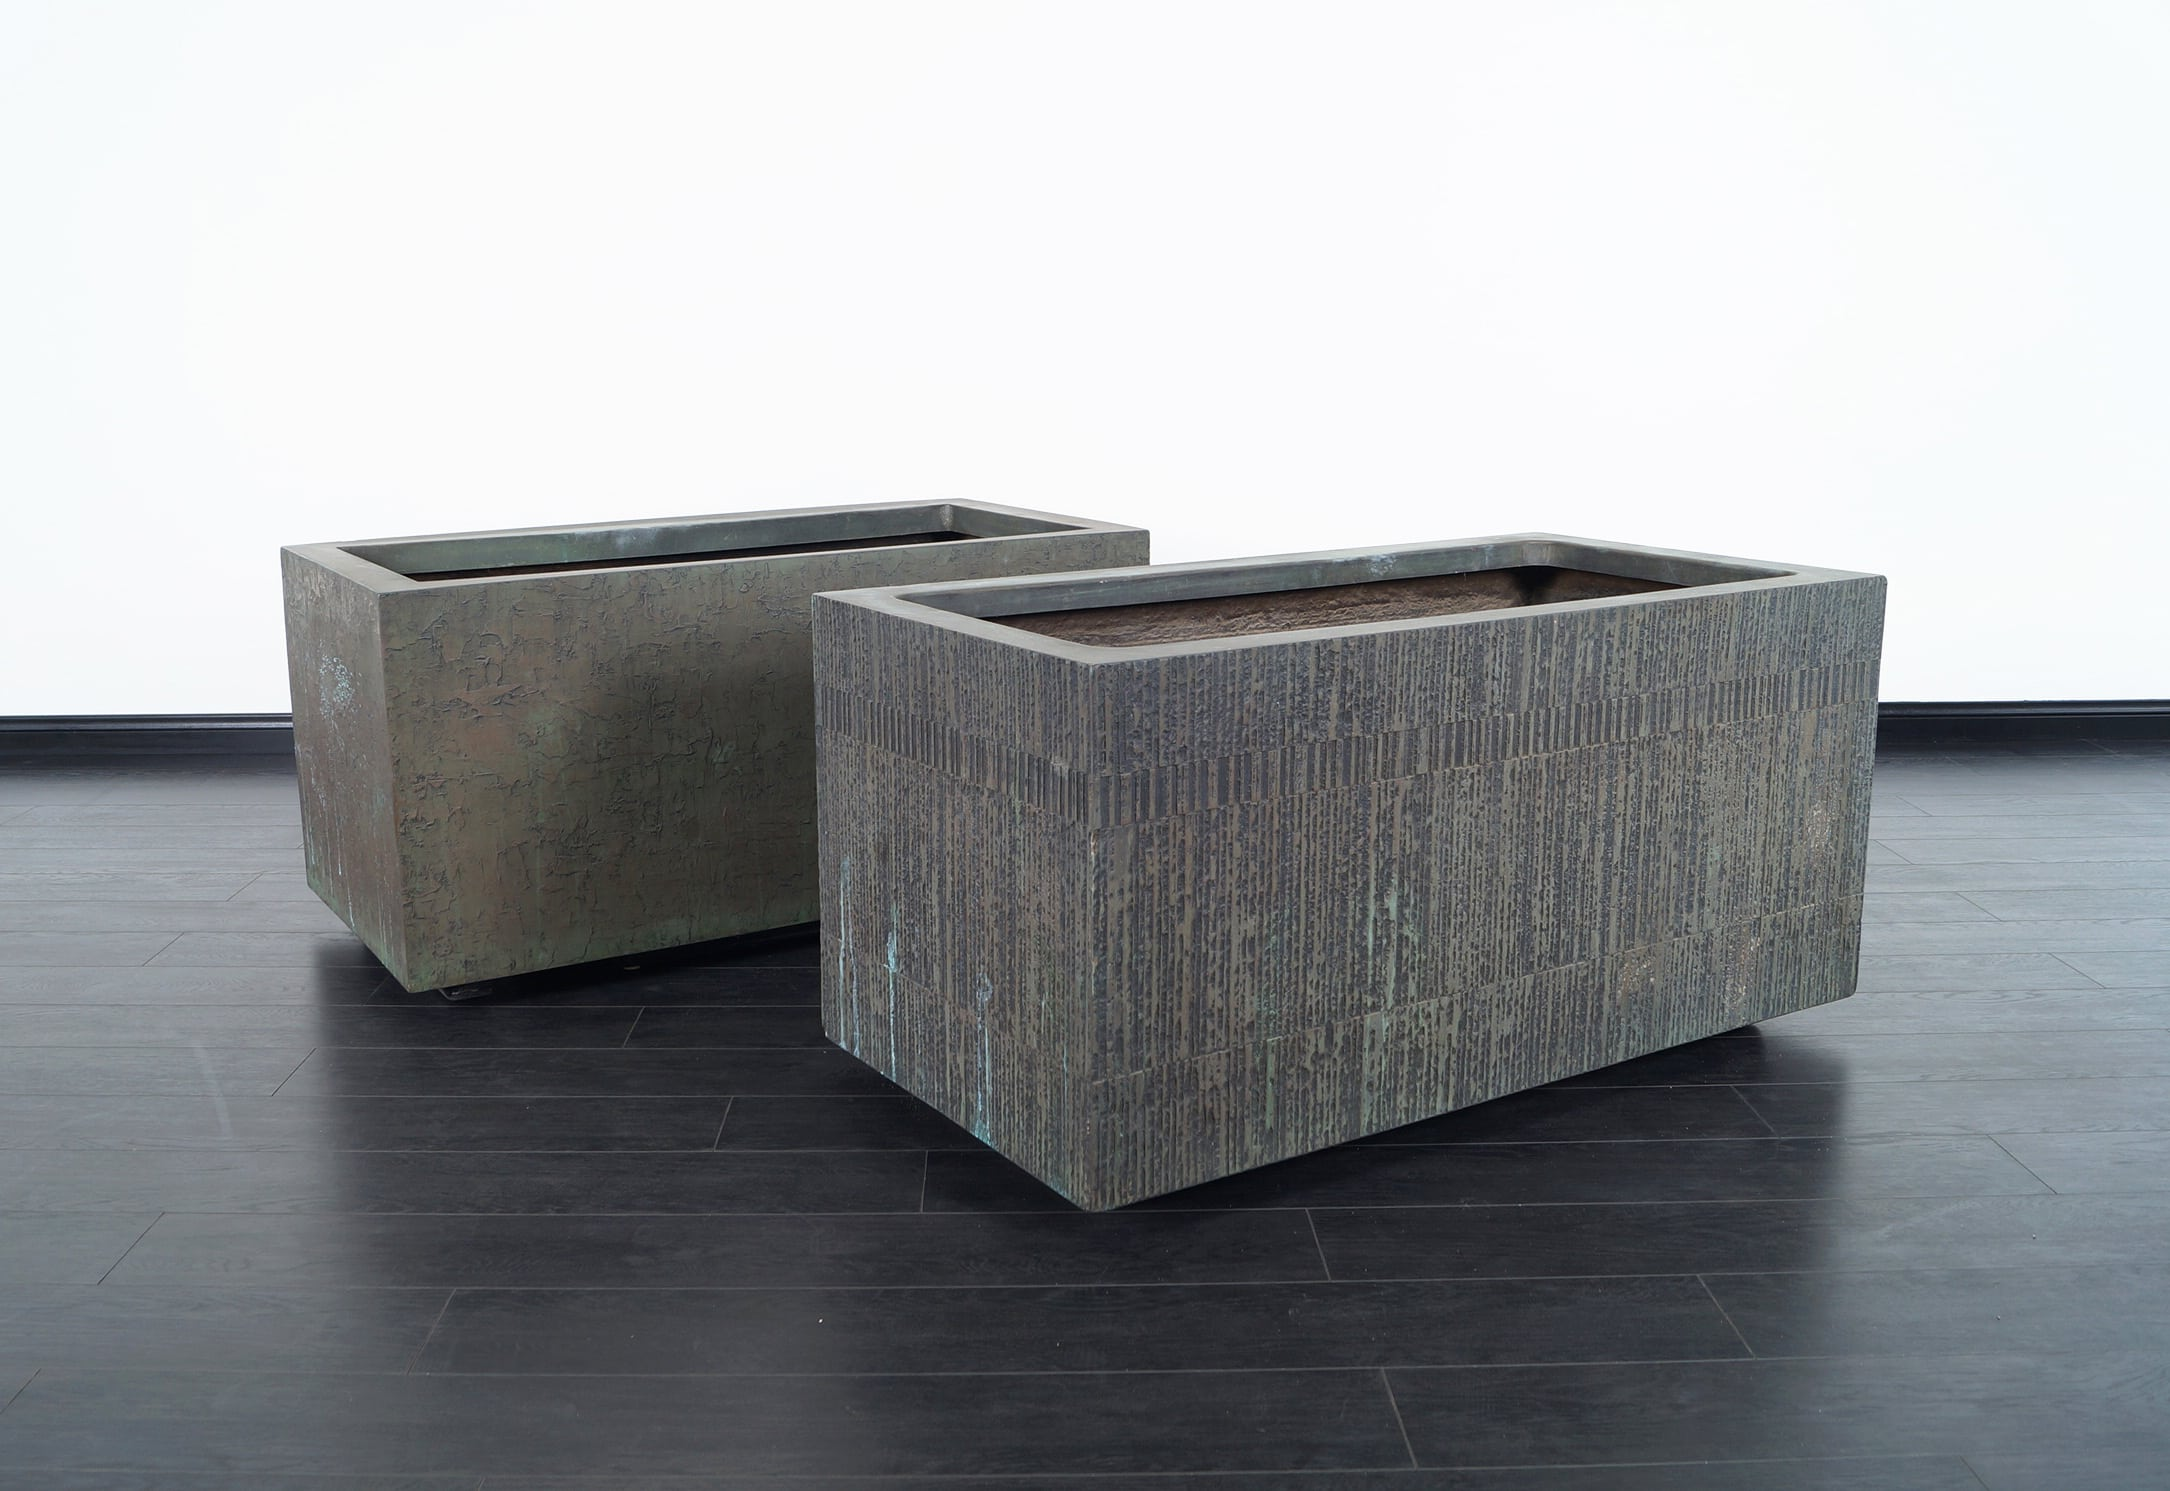 Architectural Cast Bronze Resin Planters by Forms and Surfaces